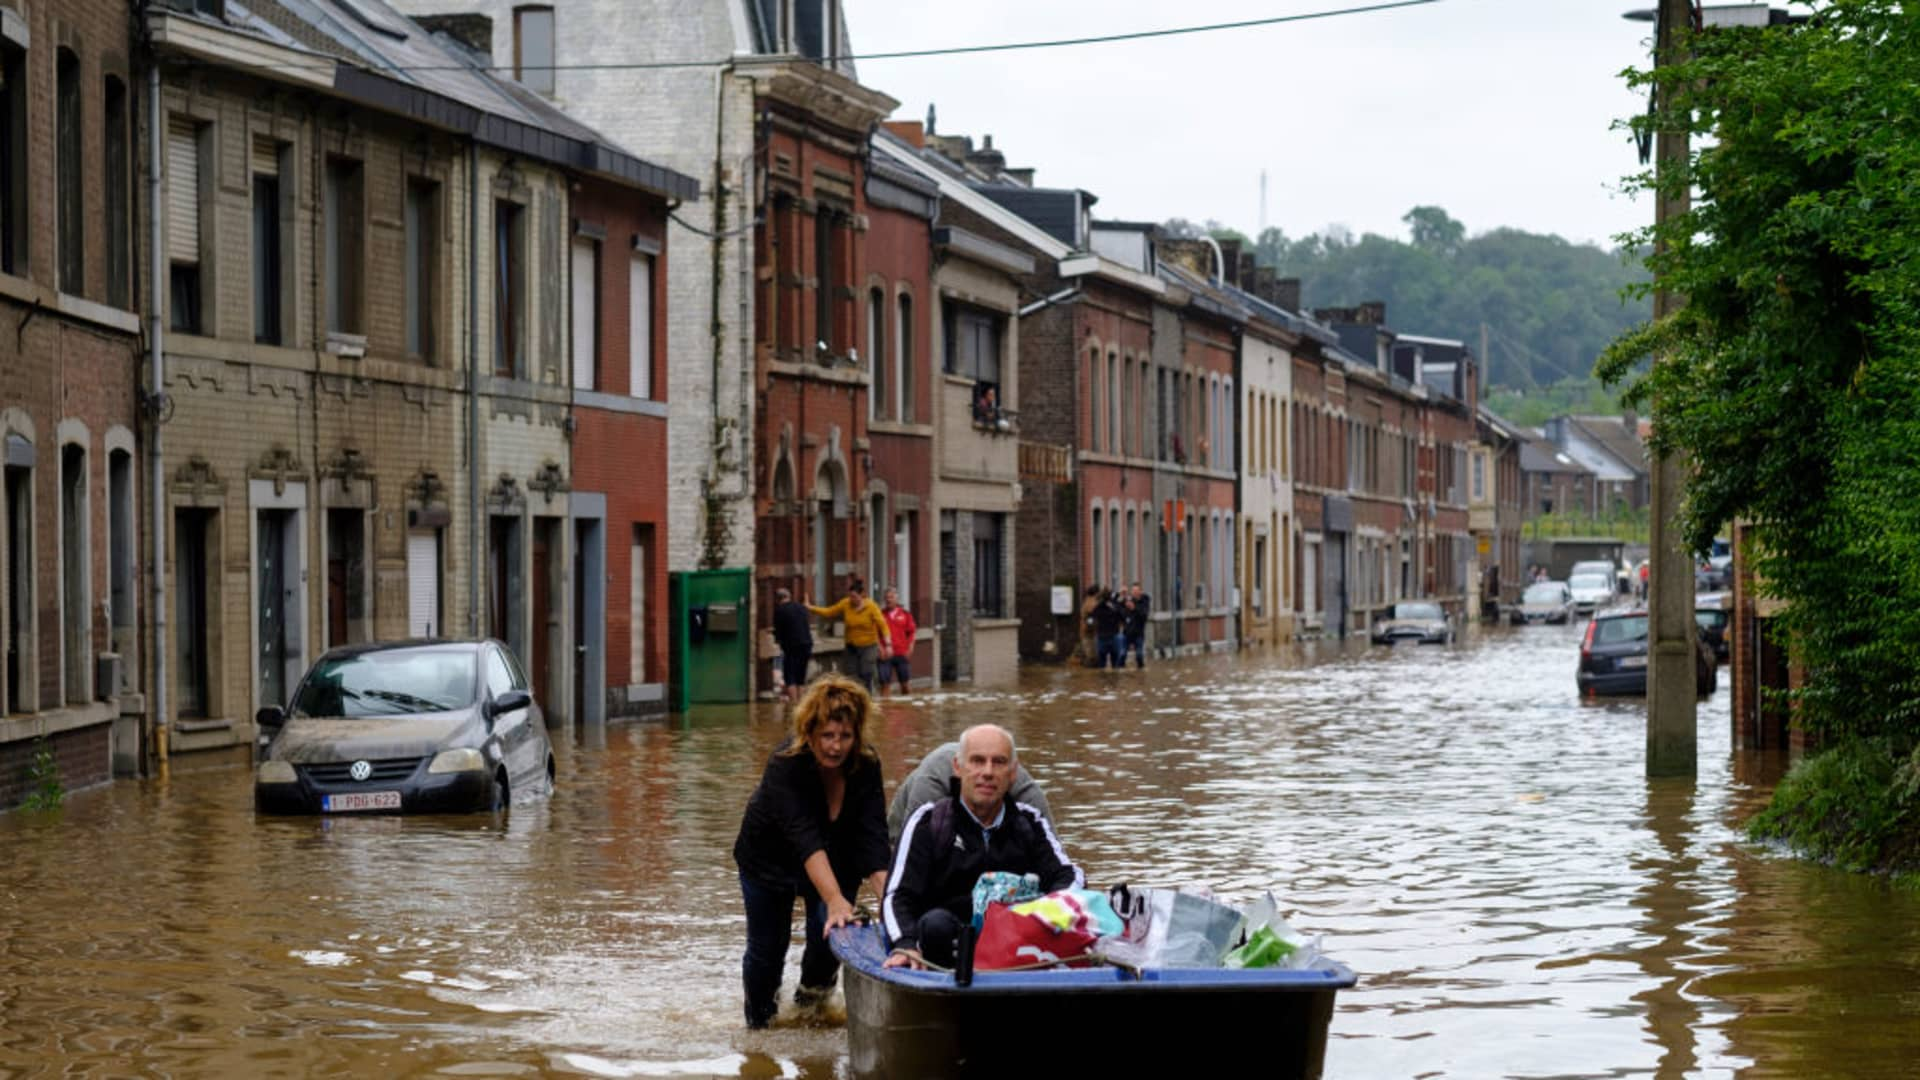 ANGLEUR, LIEGE, BELGIUM - JULY 16: People use a boat to bring man out of home following a severe storm on July 16, 2021 in 'Rue de Tilff' in Angleur, a district from Liège, Belgium.